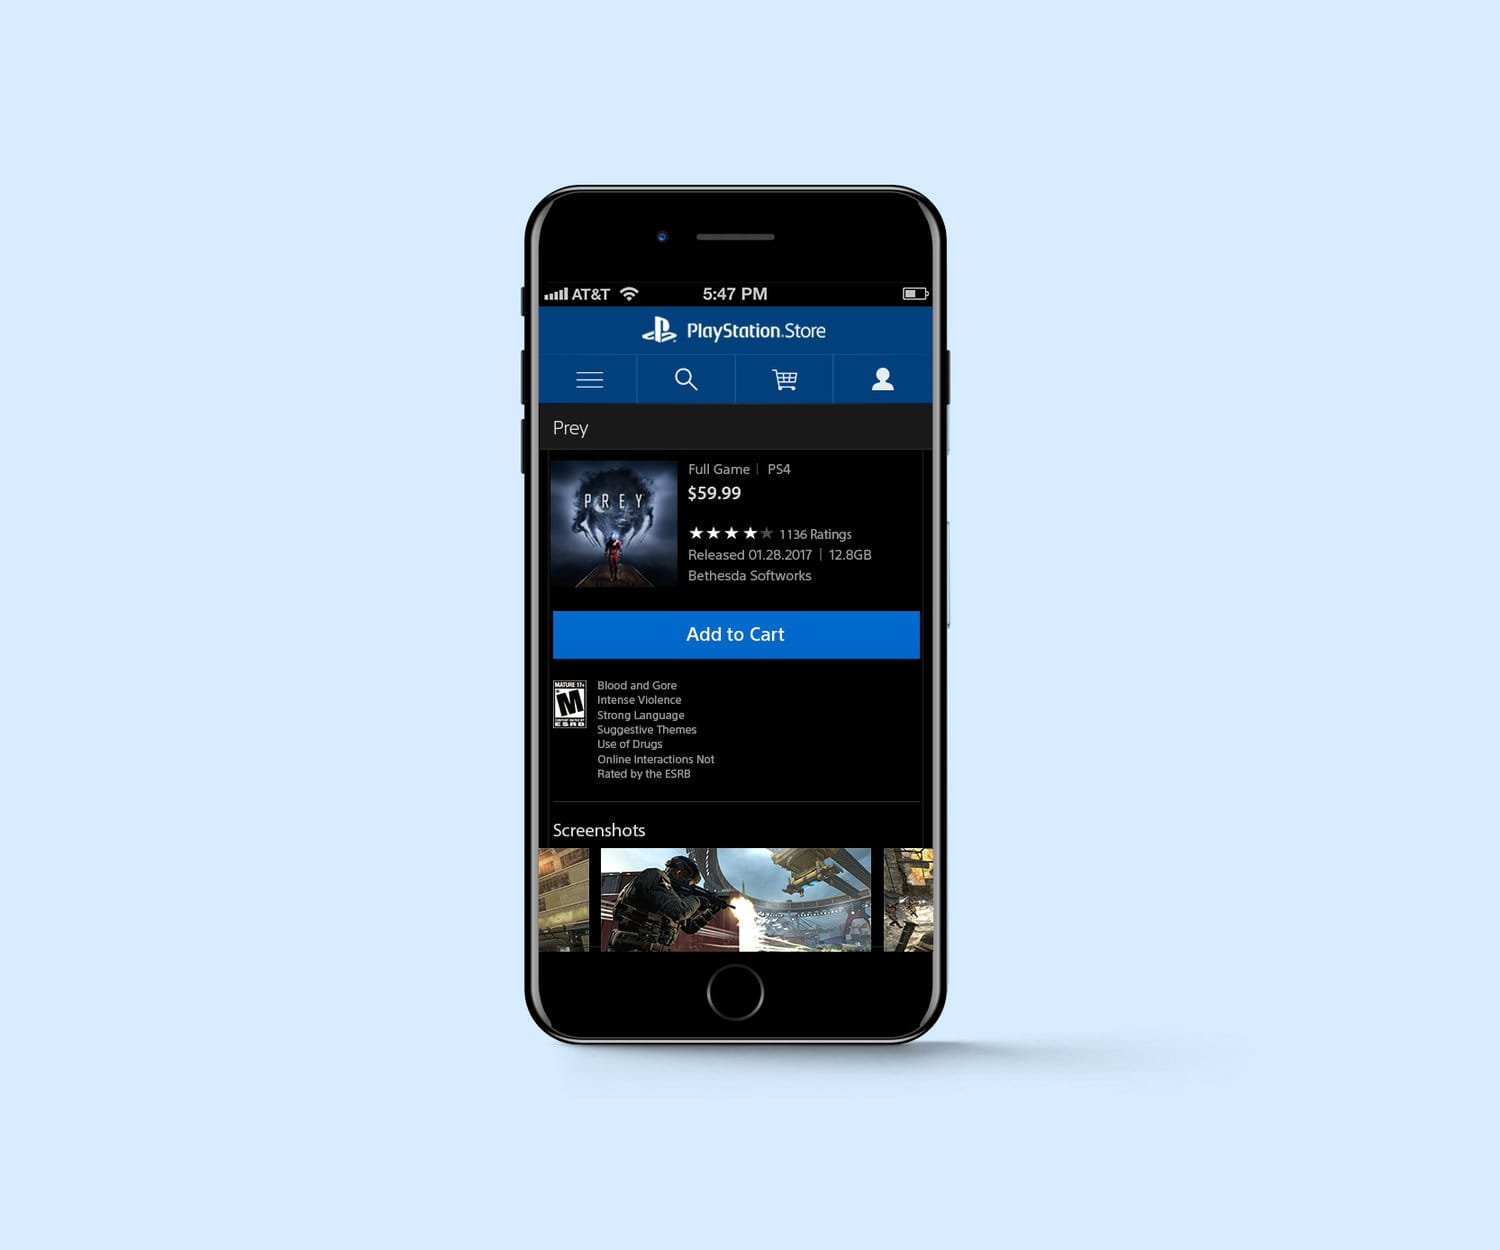 PlayStation Store - Mobile